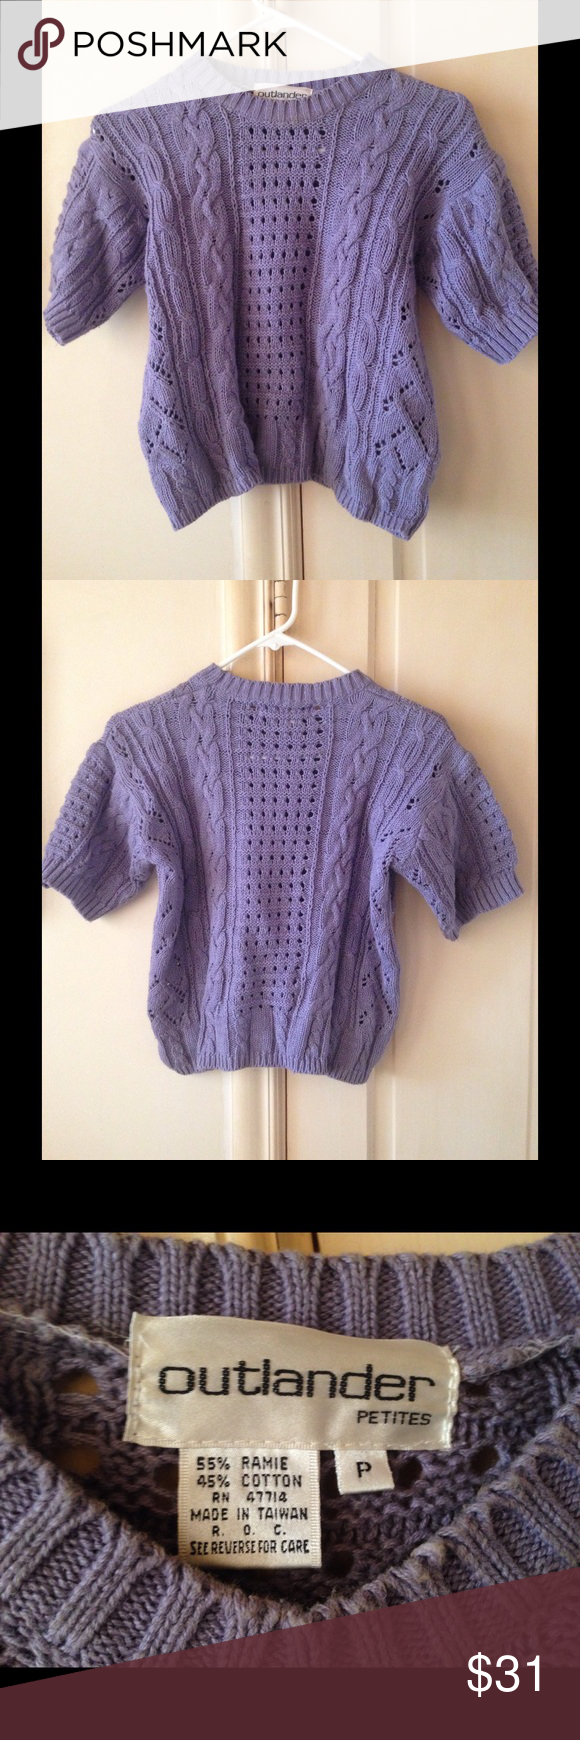 Purple Short Sleeve Sweater Lavender sweater with short sleeves. Great for Year round use. Beautiful color! Size inside is P. Outlander Sweaters